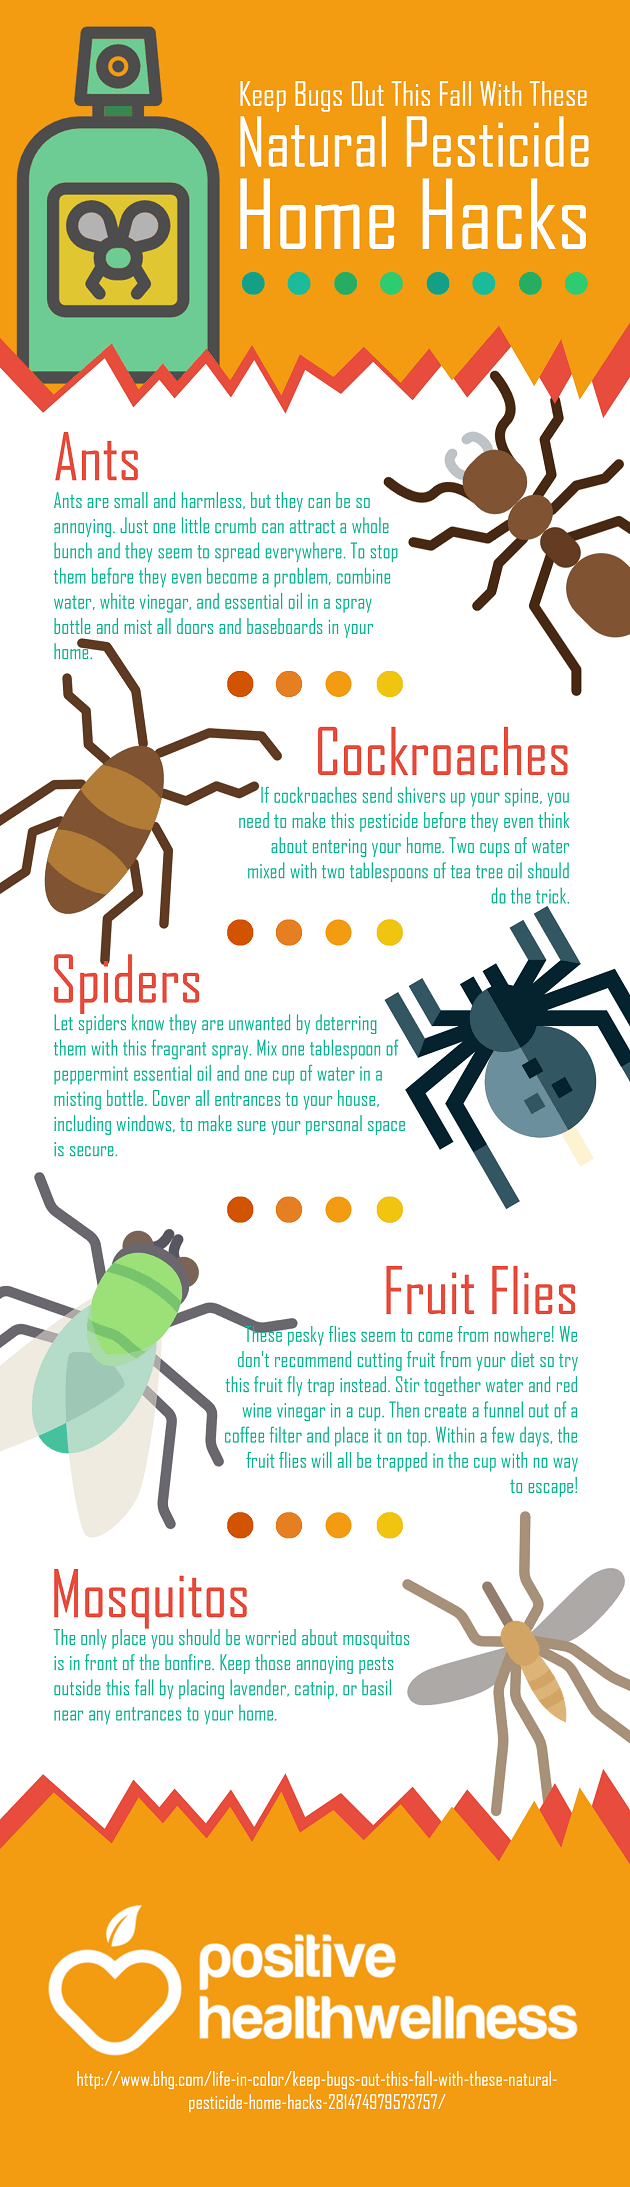 Keep Bugs Out This Fall With These Natural Pesticide Home Hacks